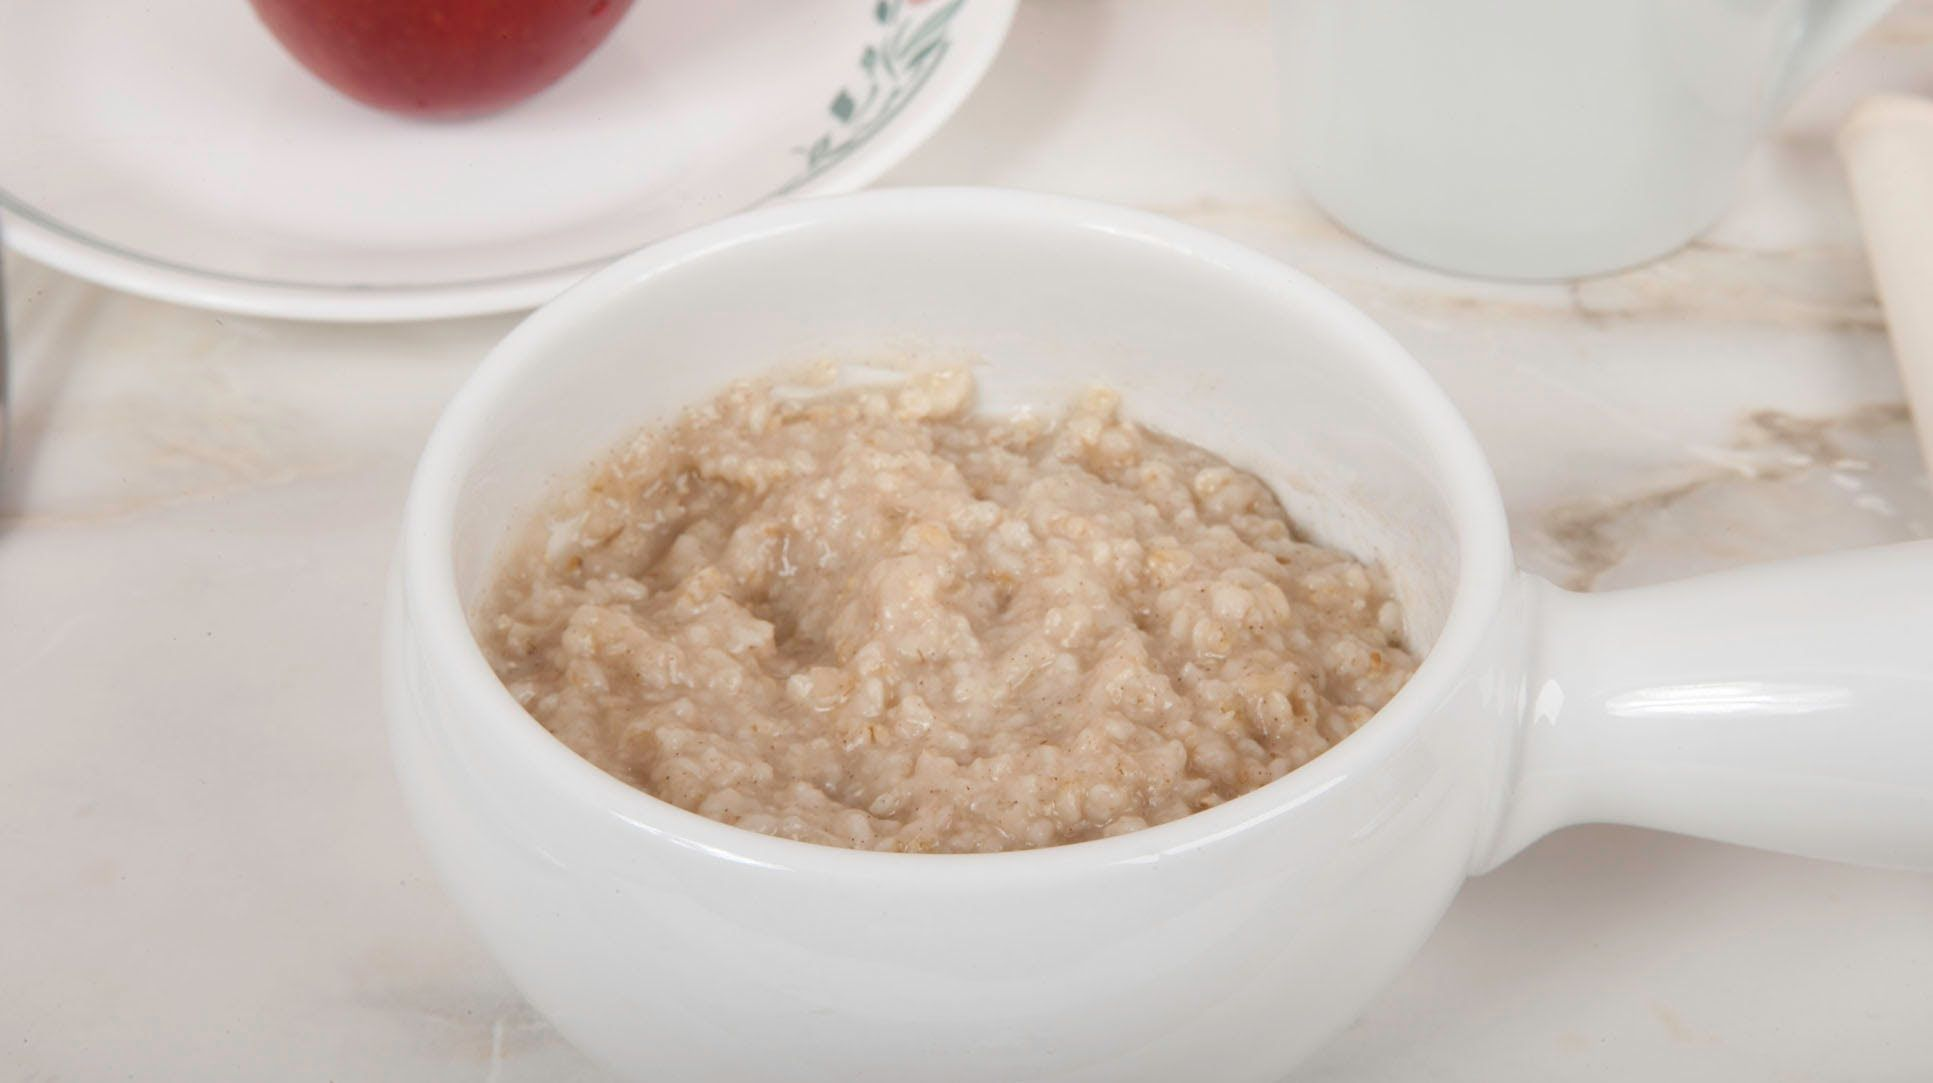 Homemade oatmeal without preservatives and artificial